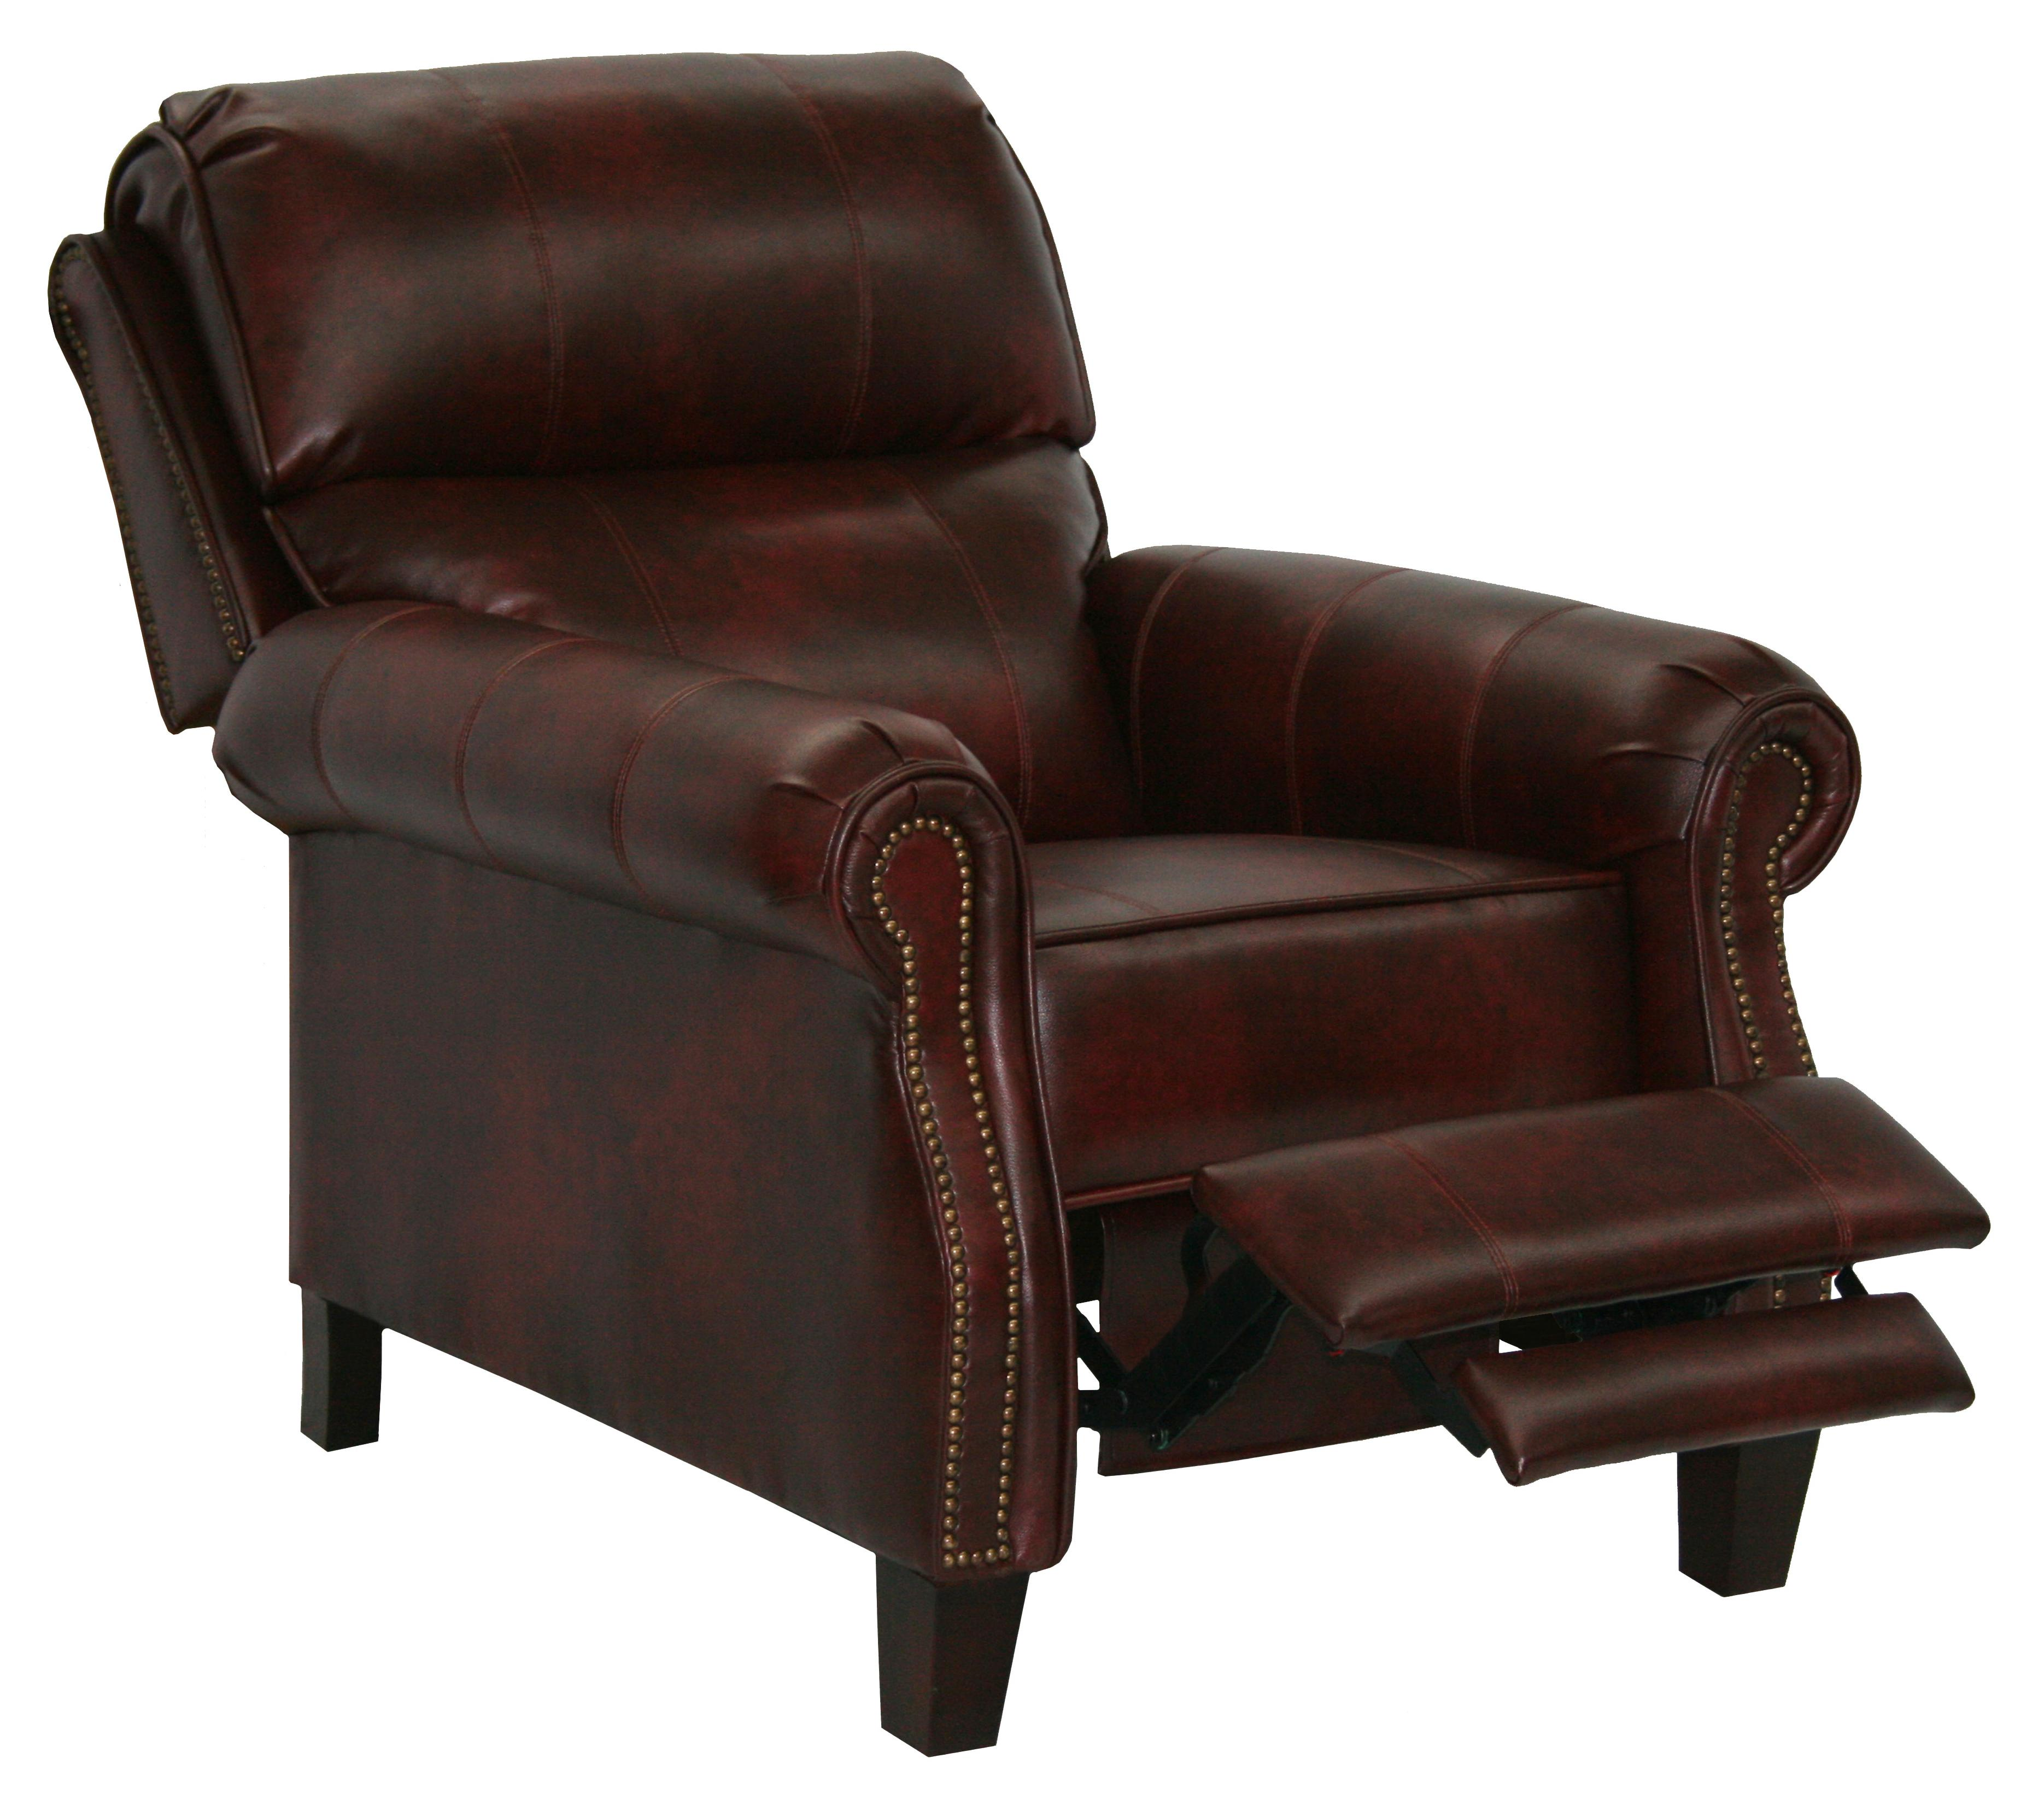 recliner vs chair with ottoman folding chairs cheap catnapper motion and recliners frazier high leg